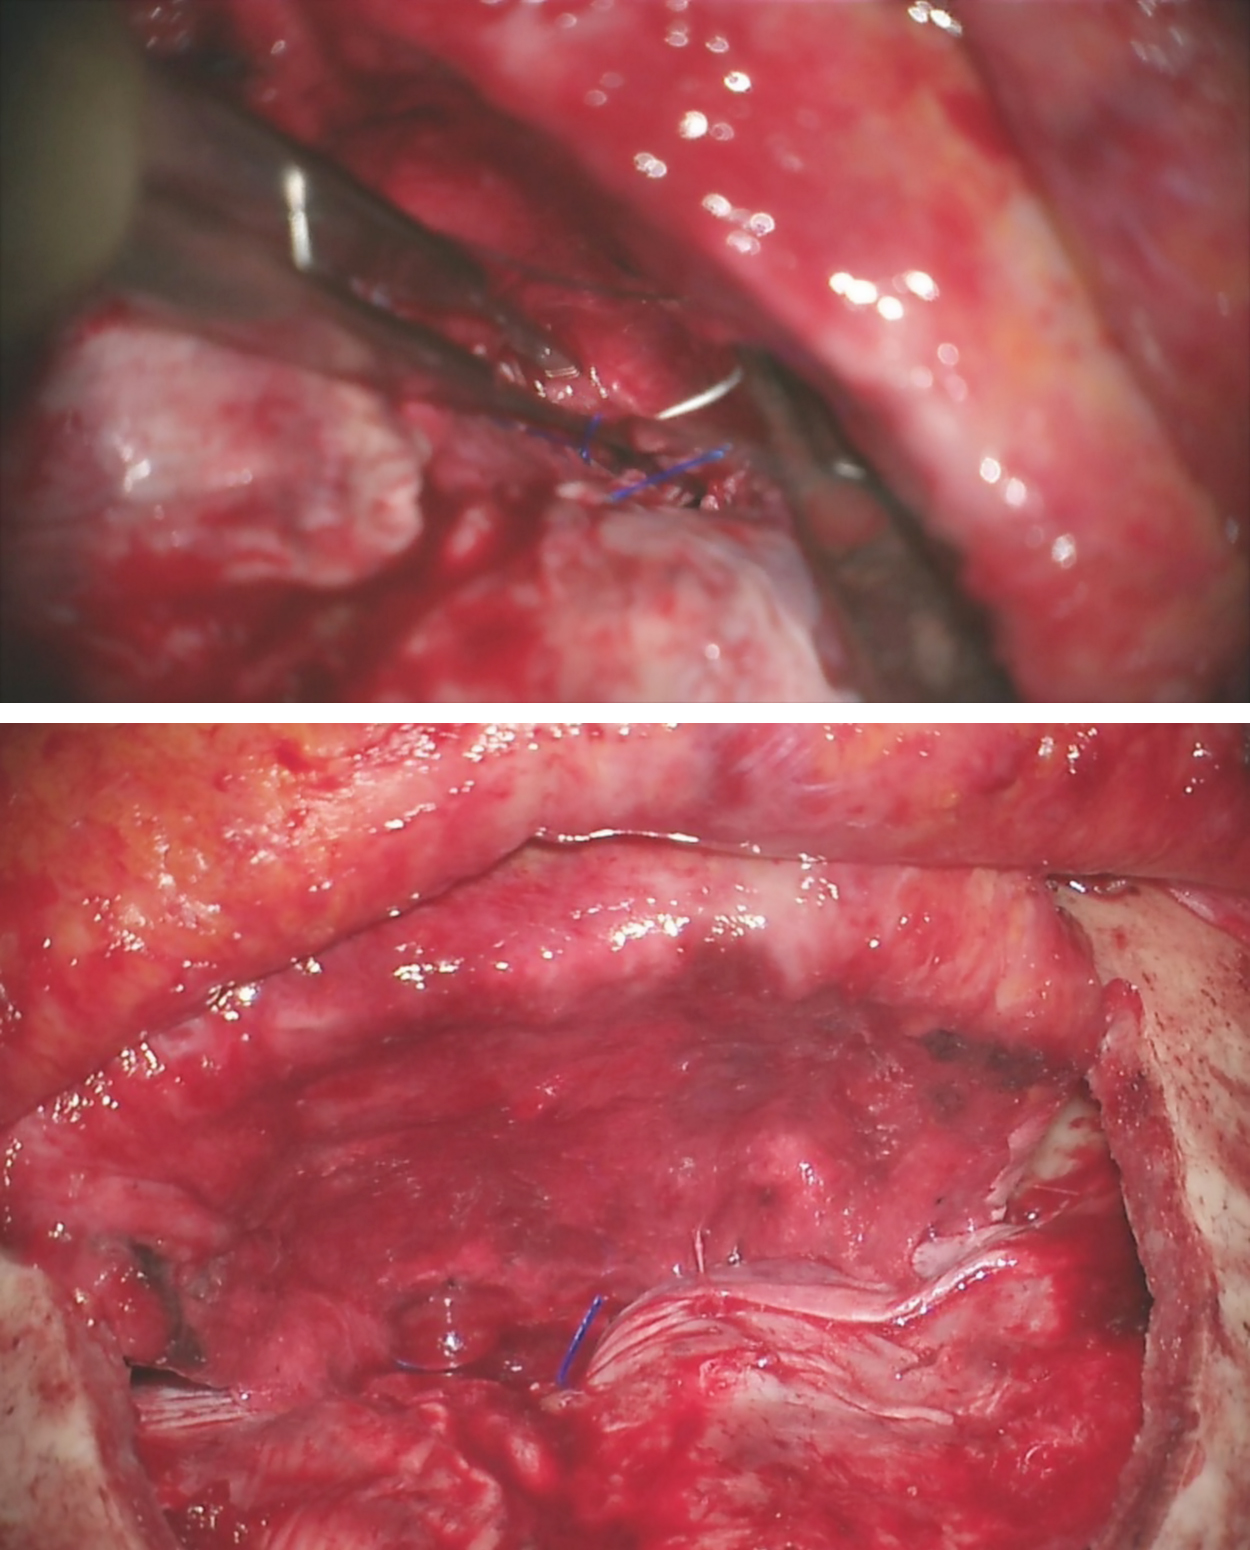 Figure 13: Excess pericranium is amputated and its edge is sutured to the dura along the floor of the anterior fossa as posteriorly as possible in a running fashion (top image). The pericranial graft provides a sheet of vascularized tissue to separate the intracranial space from the nasal cavity (bottom image).